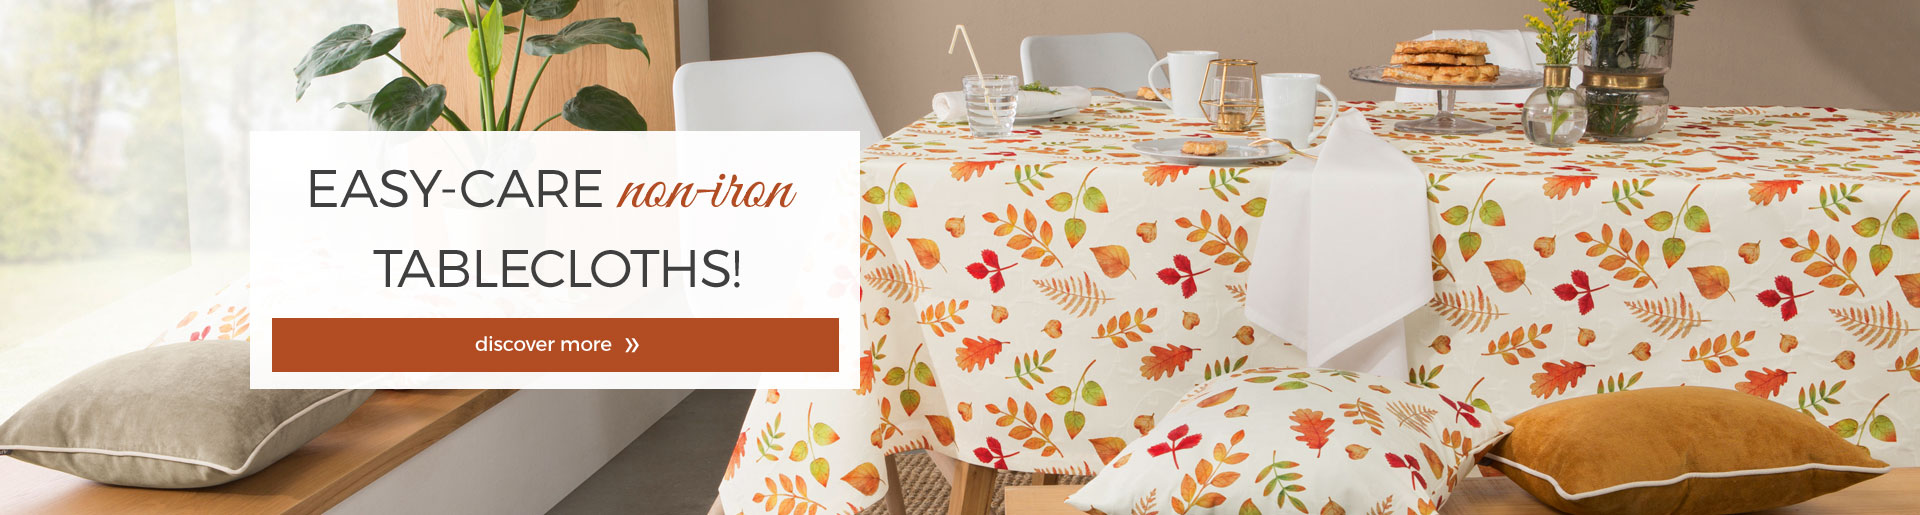 Easy care non-iron tableware